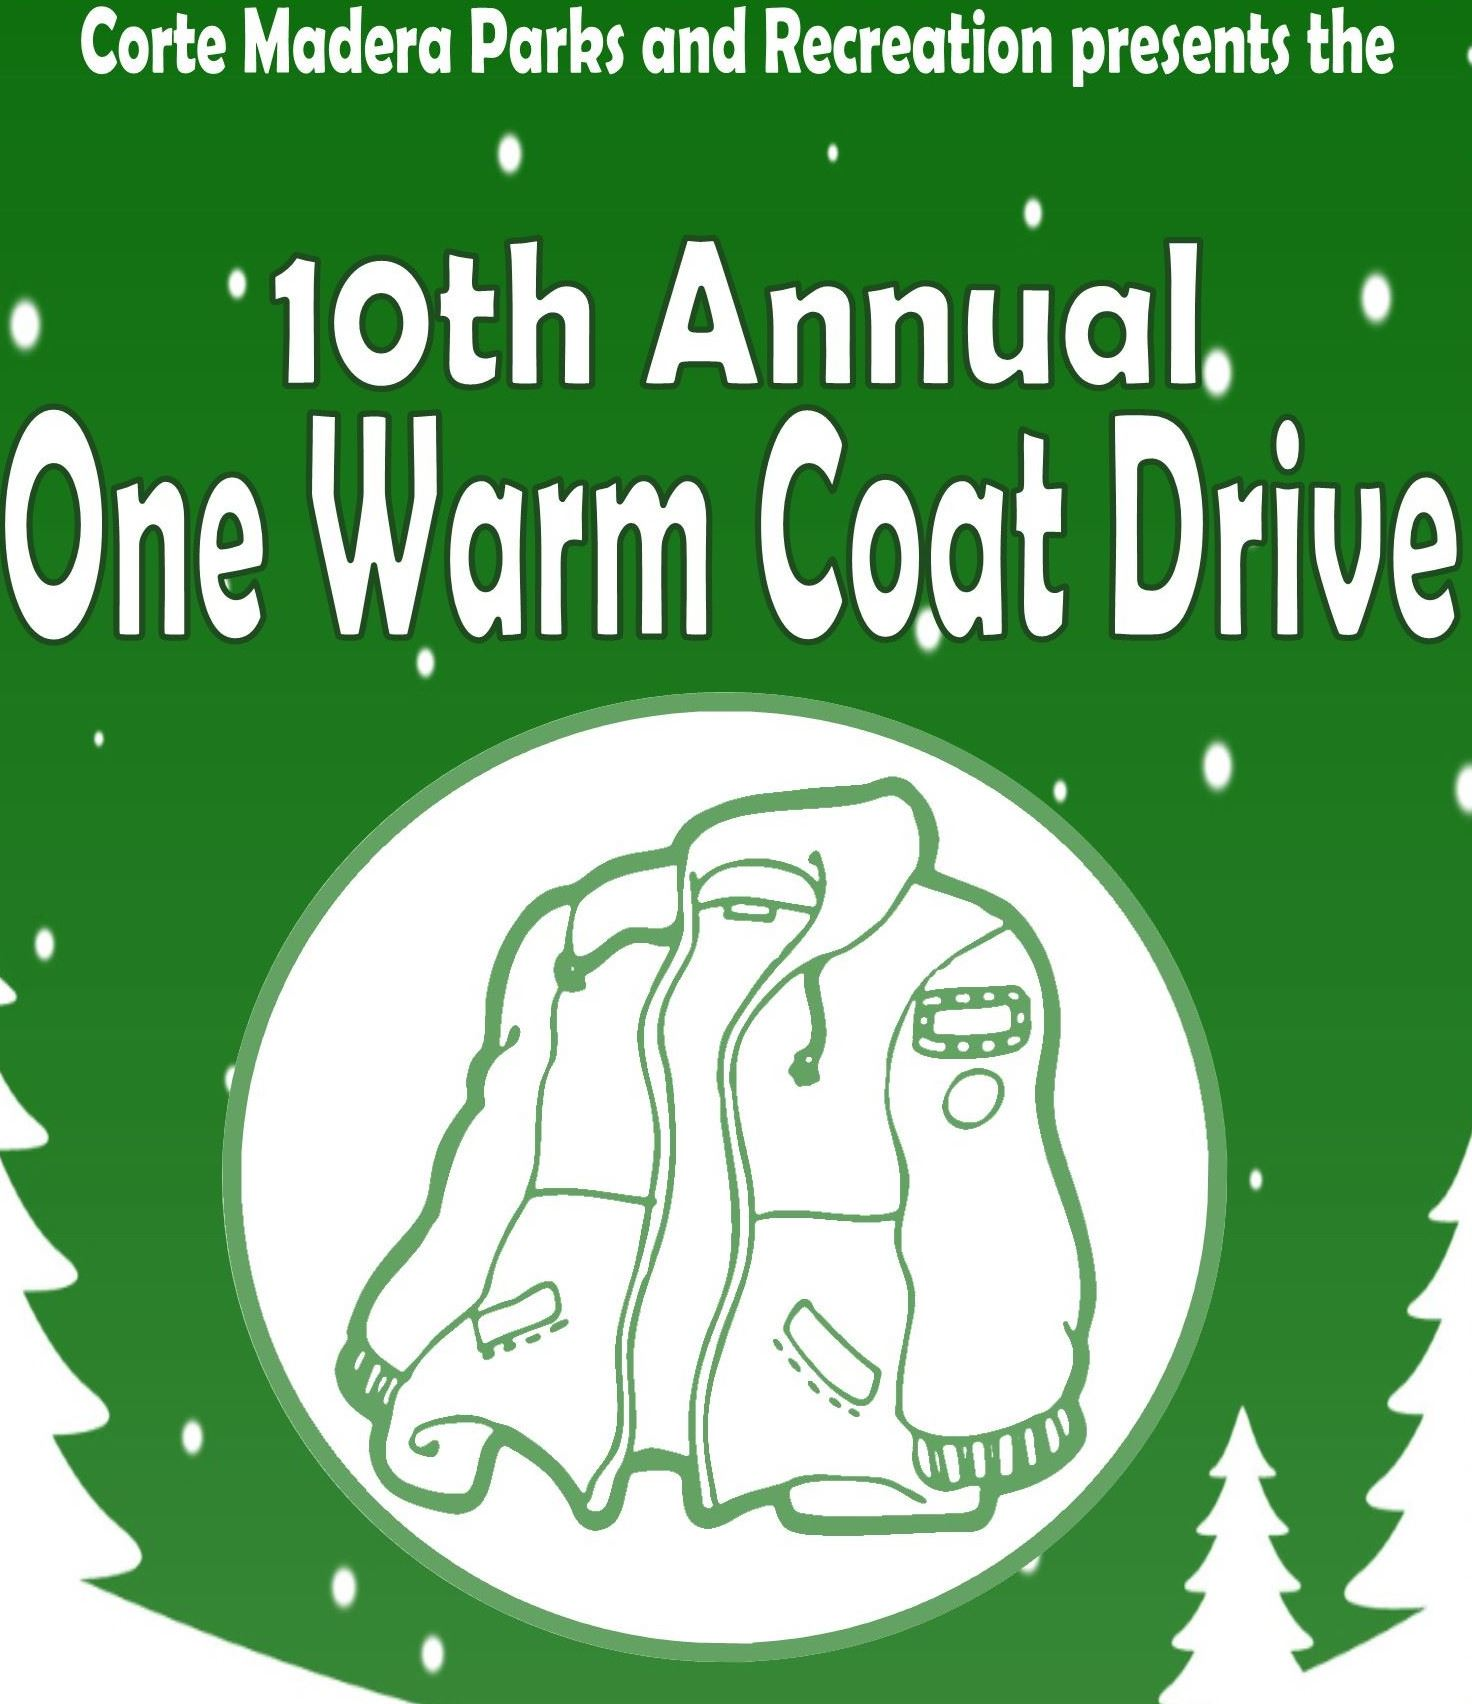 One Warm Coat Drive 2018